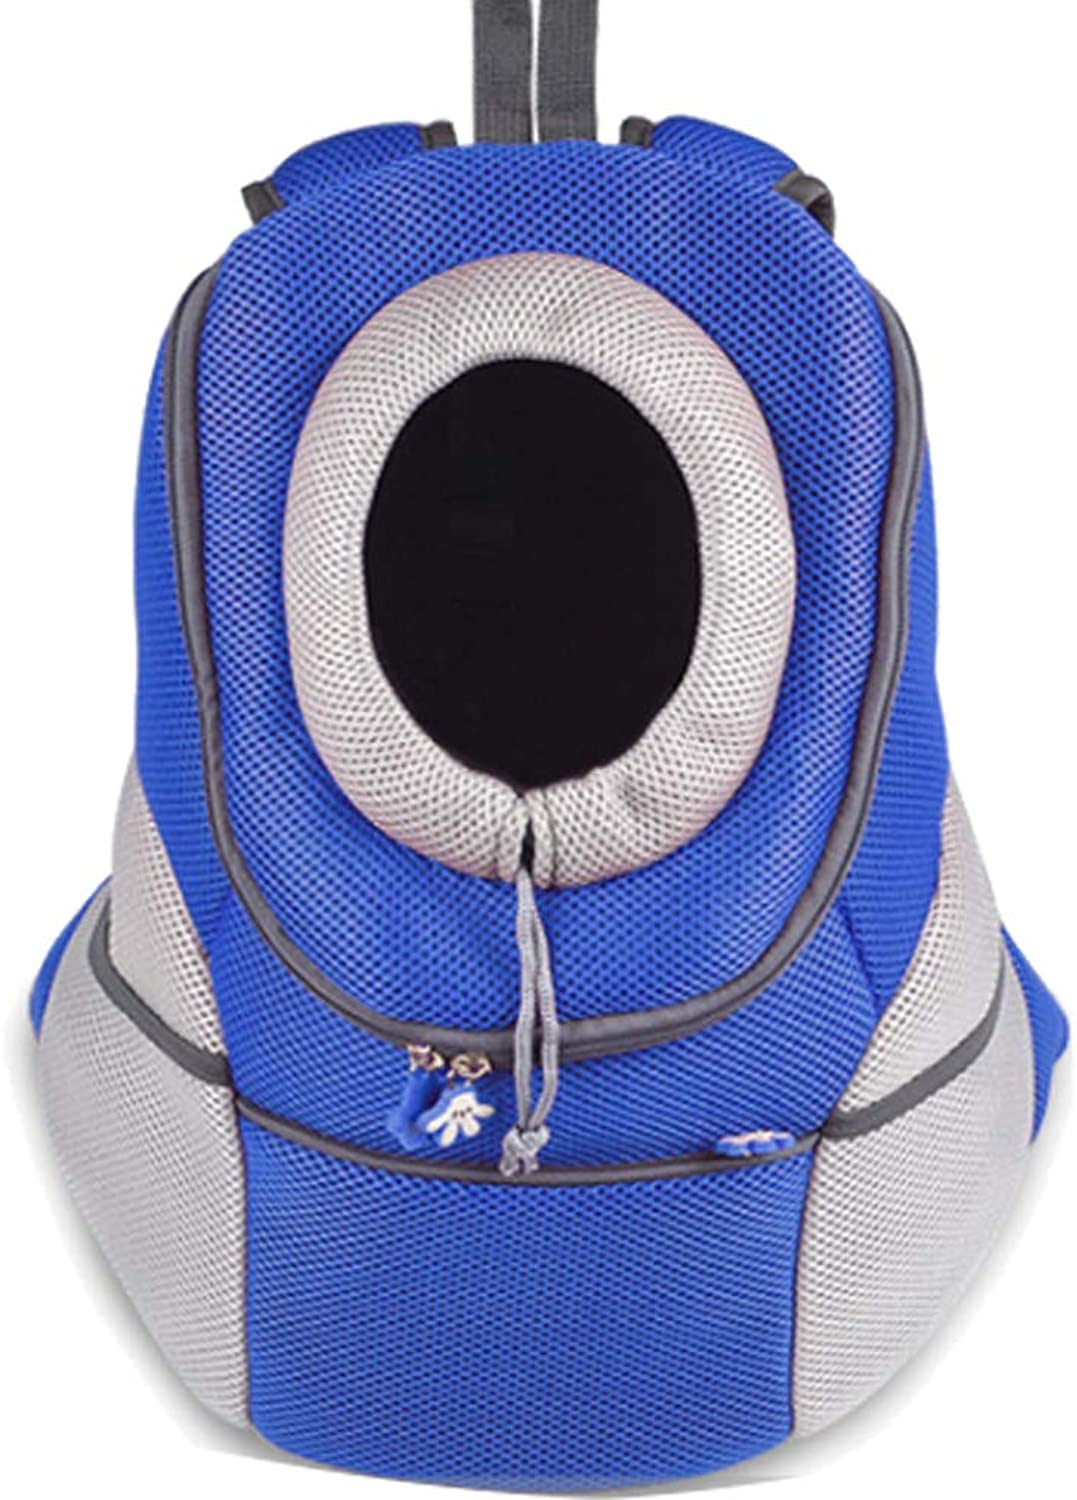 Comfortable Dog Cat Carrier Backpack,Puppy Pet Front Bag with Breathable Head Out Design and Safety Design for Small Cat,Dogs